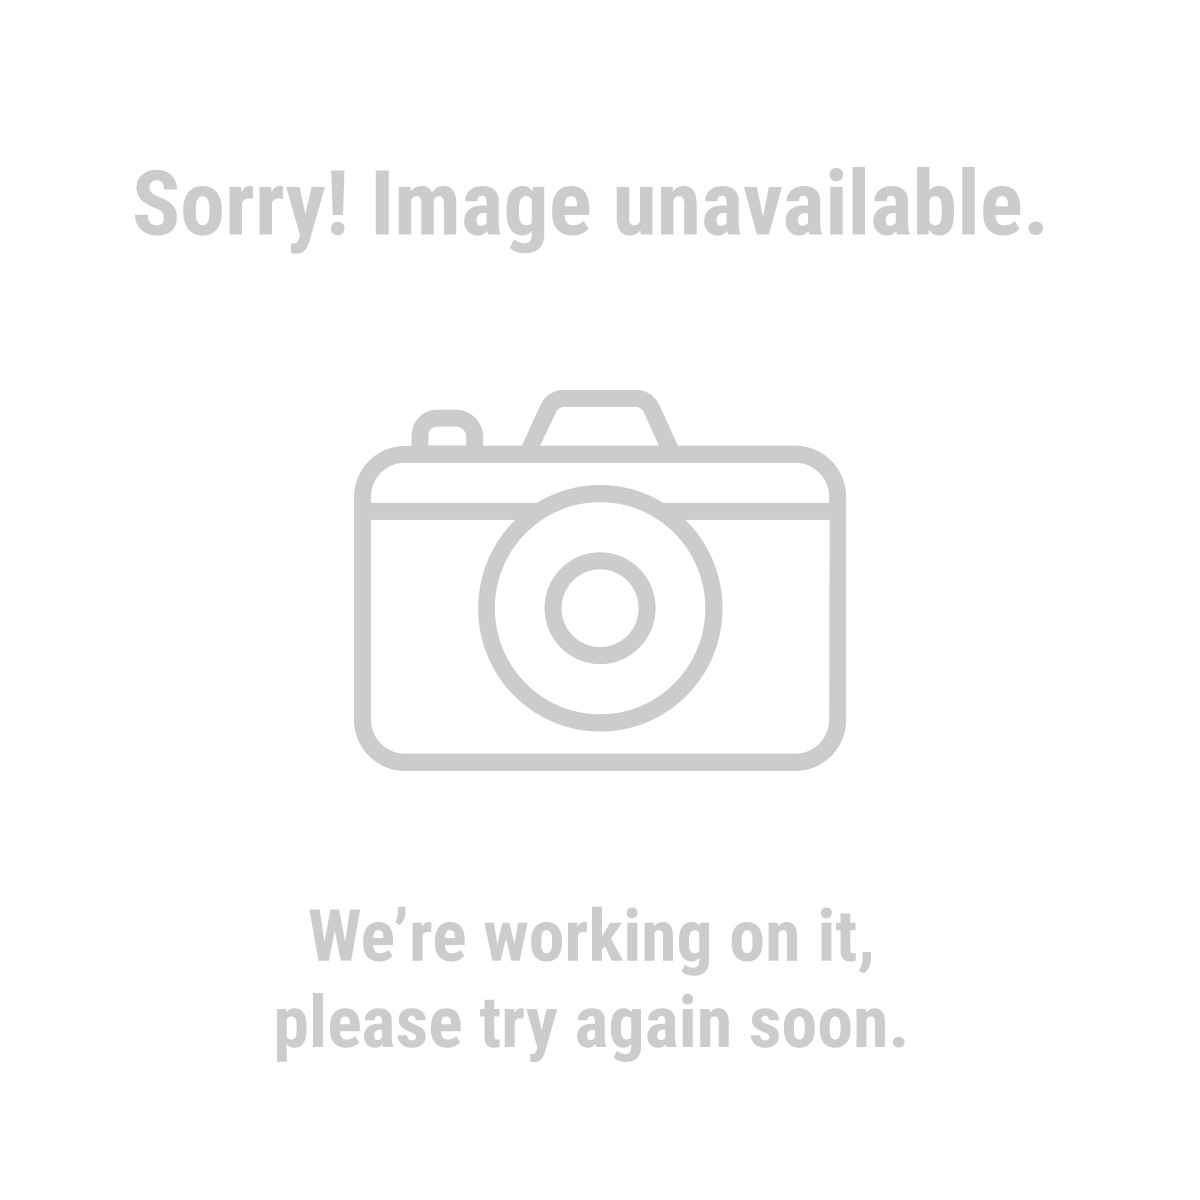 Predator Engines 69731 173 cc OHV Vertical Shaft Gas Engine - Certified for California